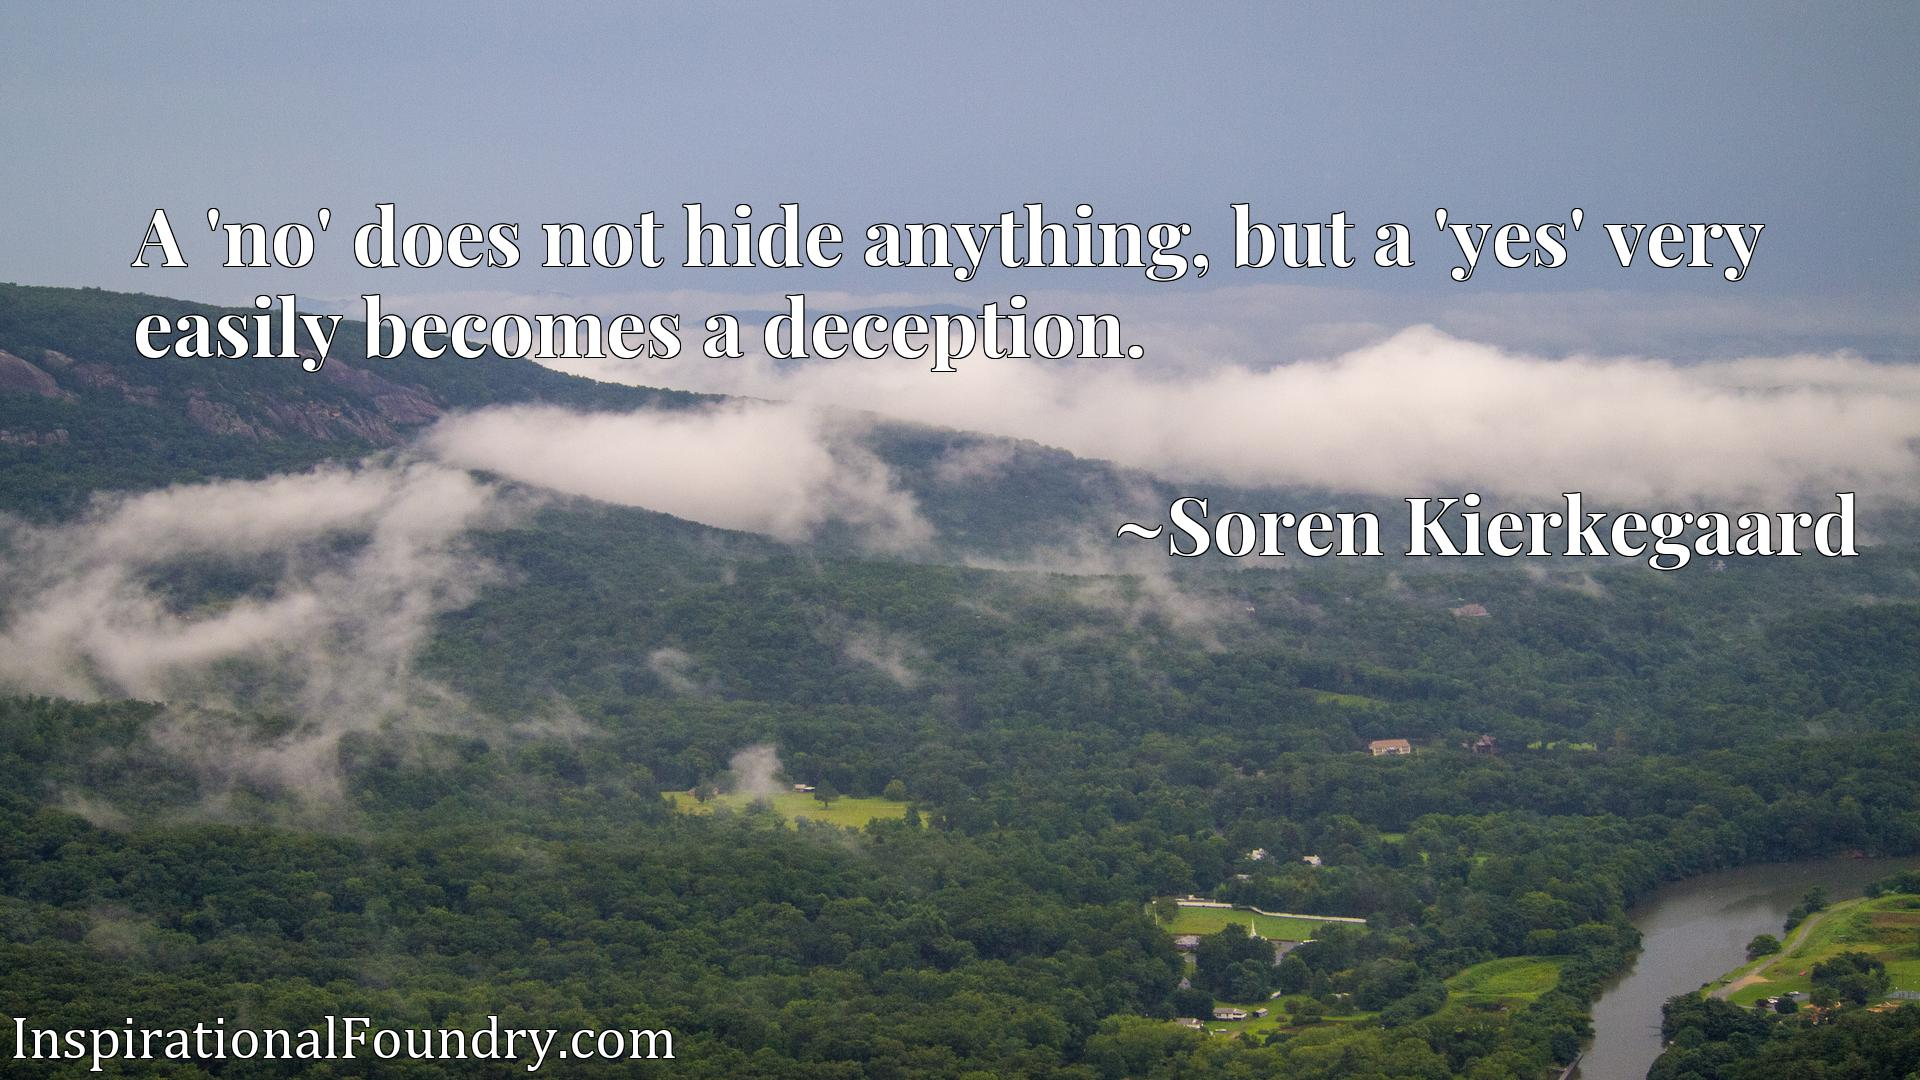 A 'no' does not hide anything, but a 'yes' very easily becomes a deception.